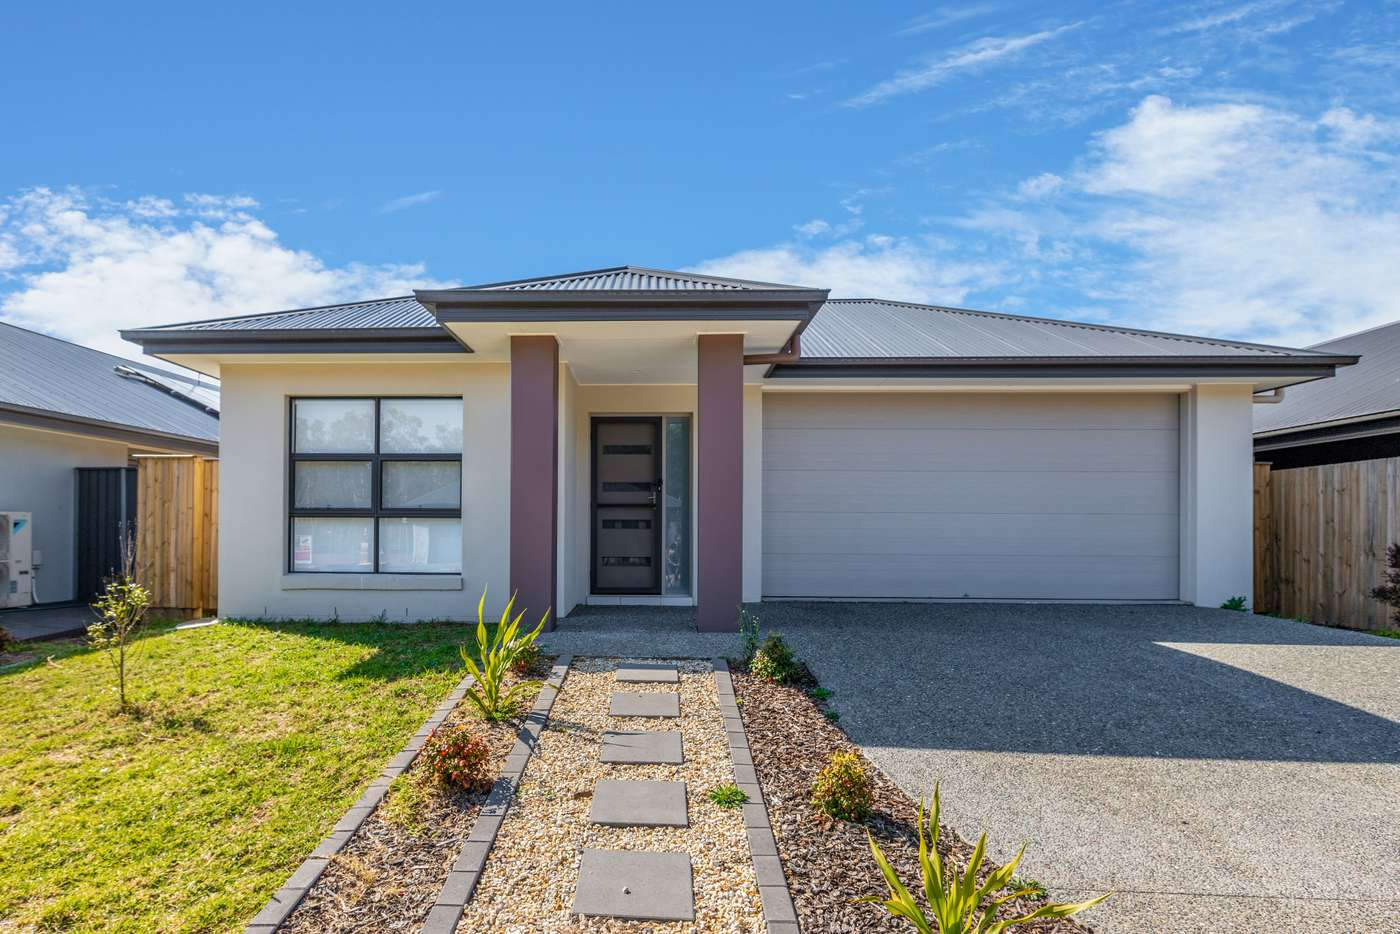 Main view of Homely house listing, 12 Portmarnock Close, Medowie NSW 2318